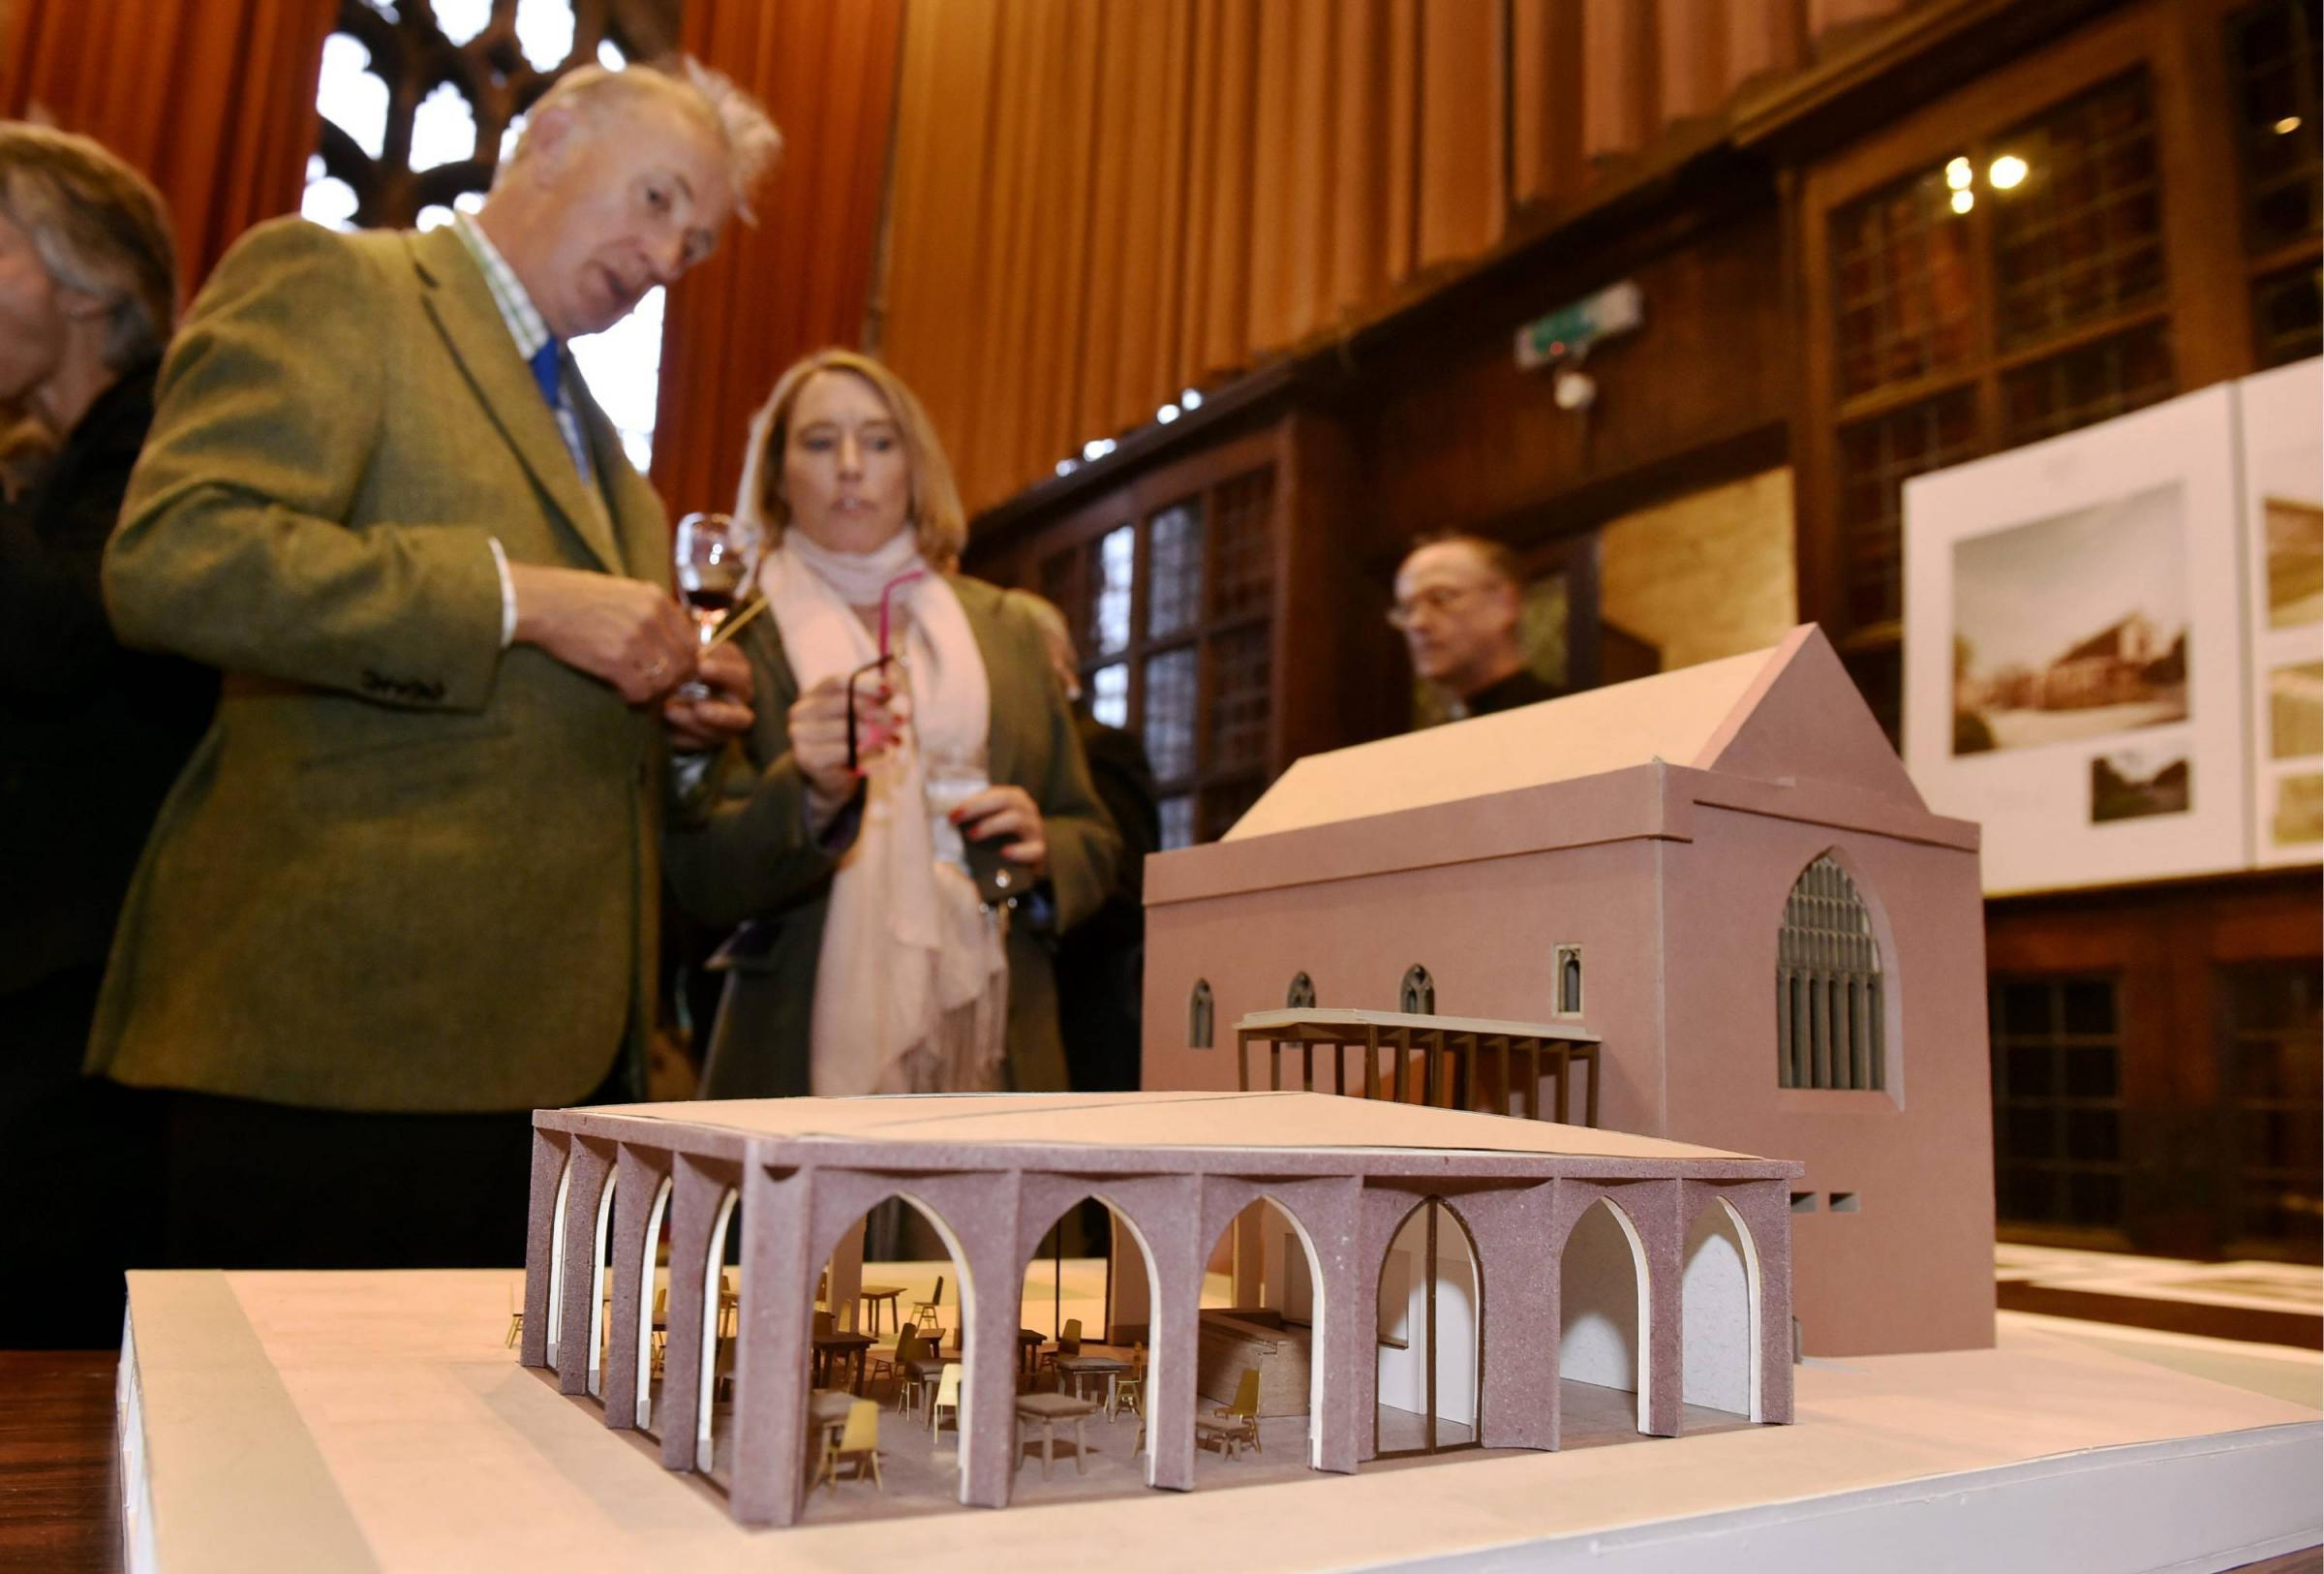 A Patrons' and Stakeholders' reception hosted by The Cathedral Chapter and the Fratry Project Management Group in the Fratry, Carlisle.